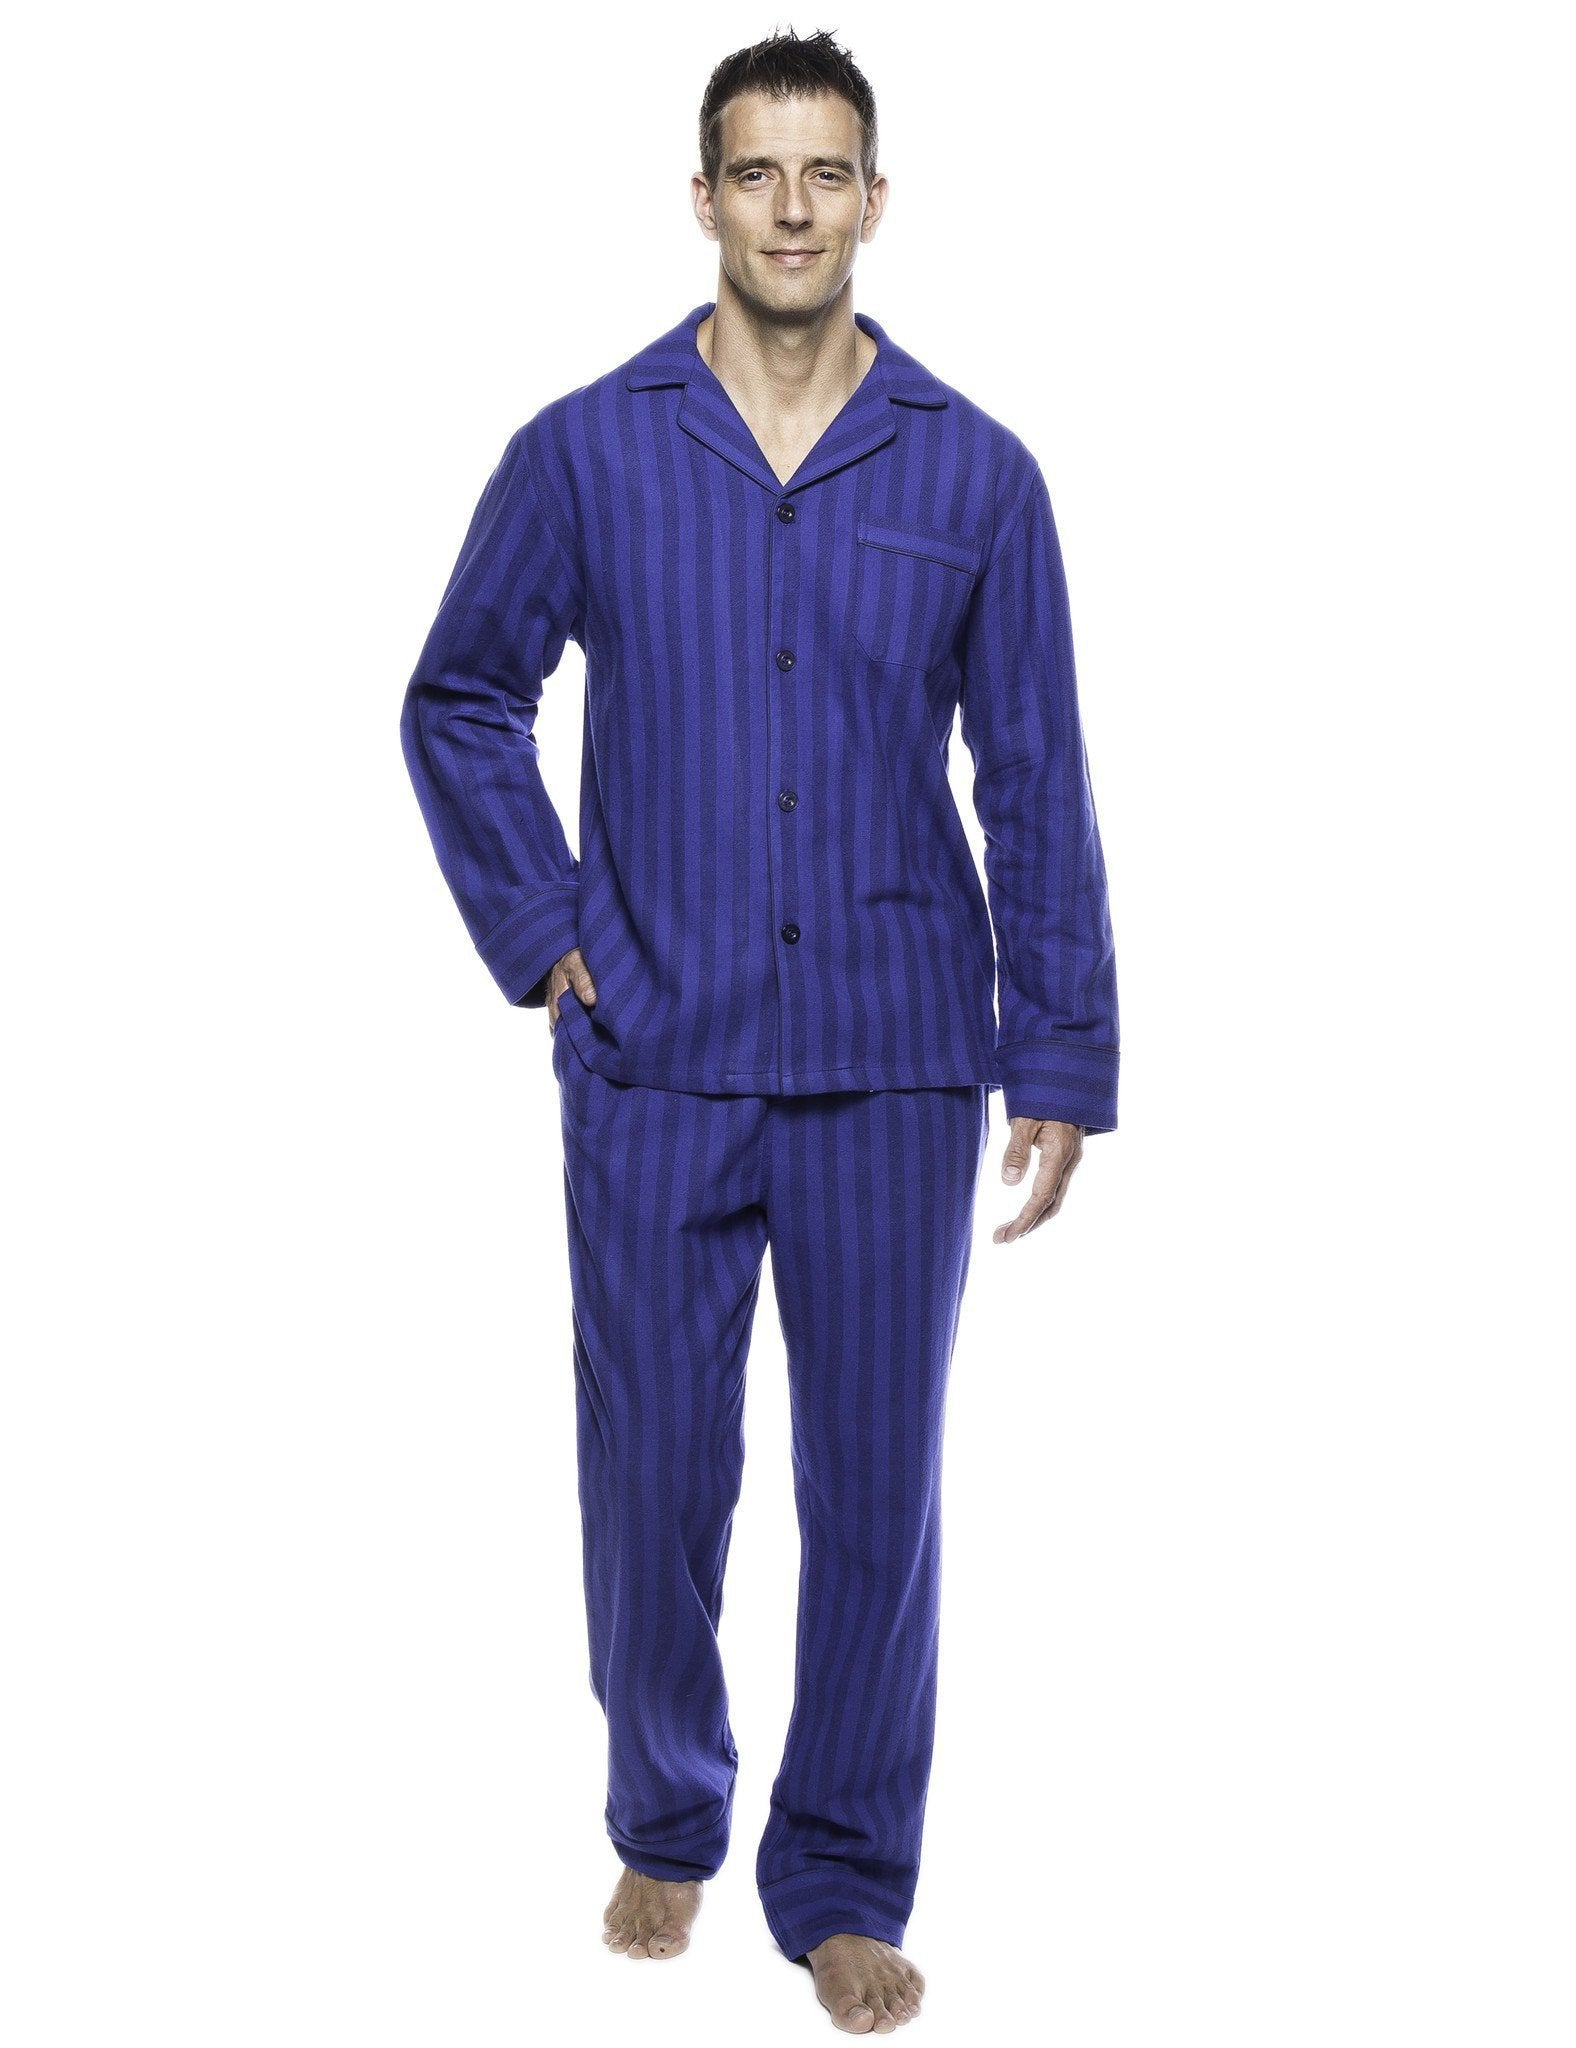 Box Packaged Men's Premium 100% Cotton Flannel Pajama Sleepwear Set - Stripes Tonal Blue